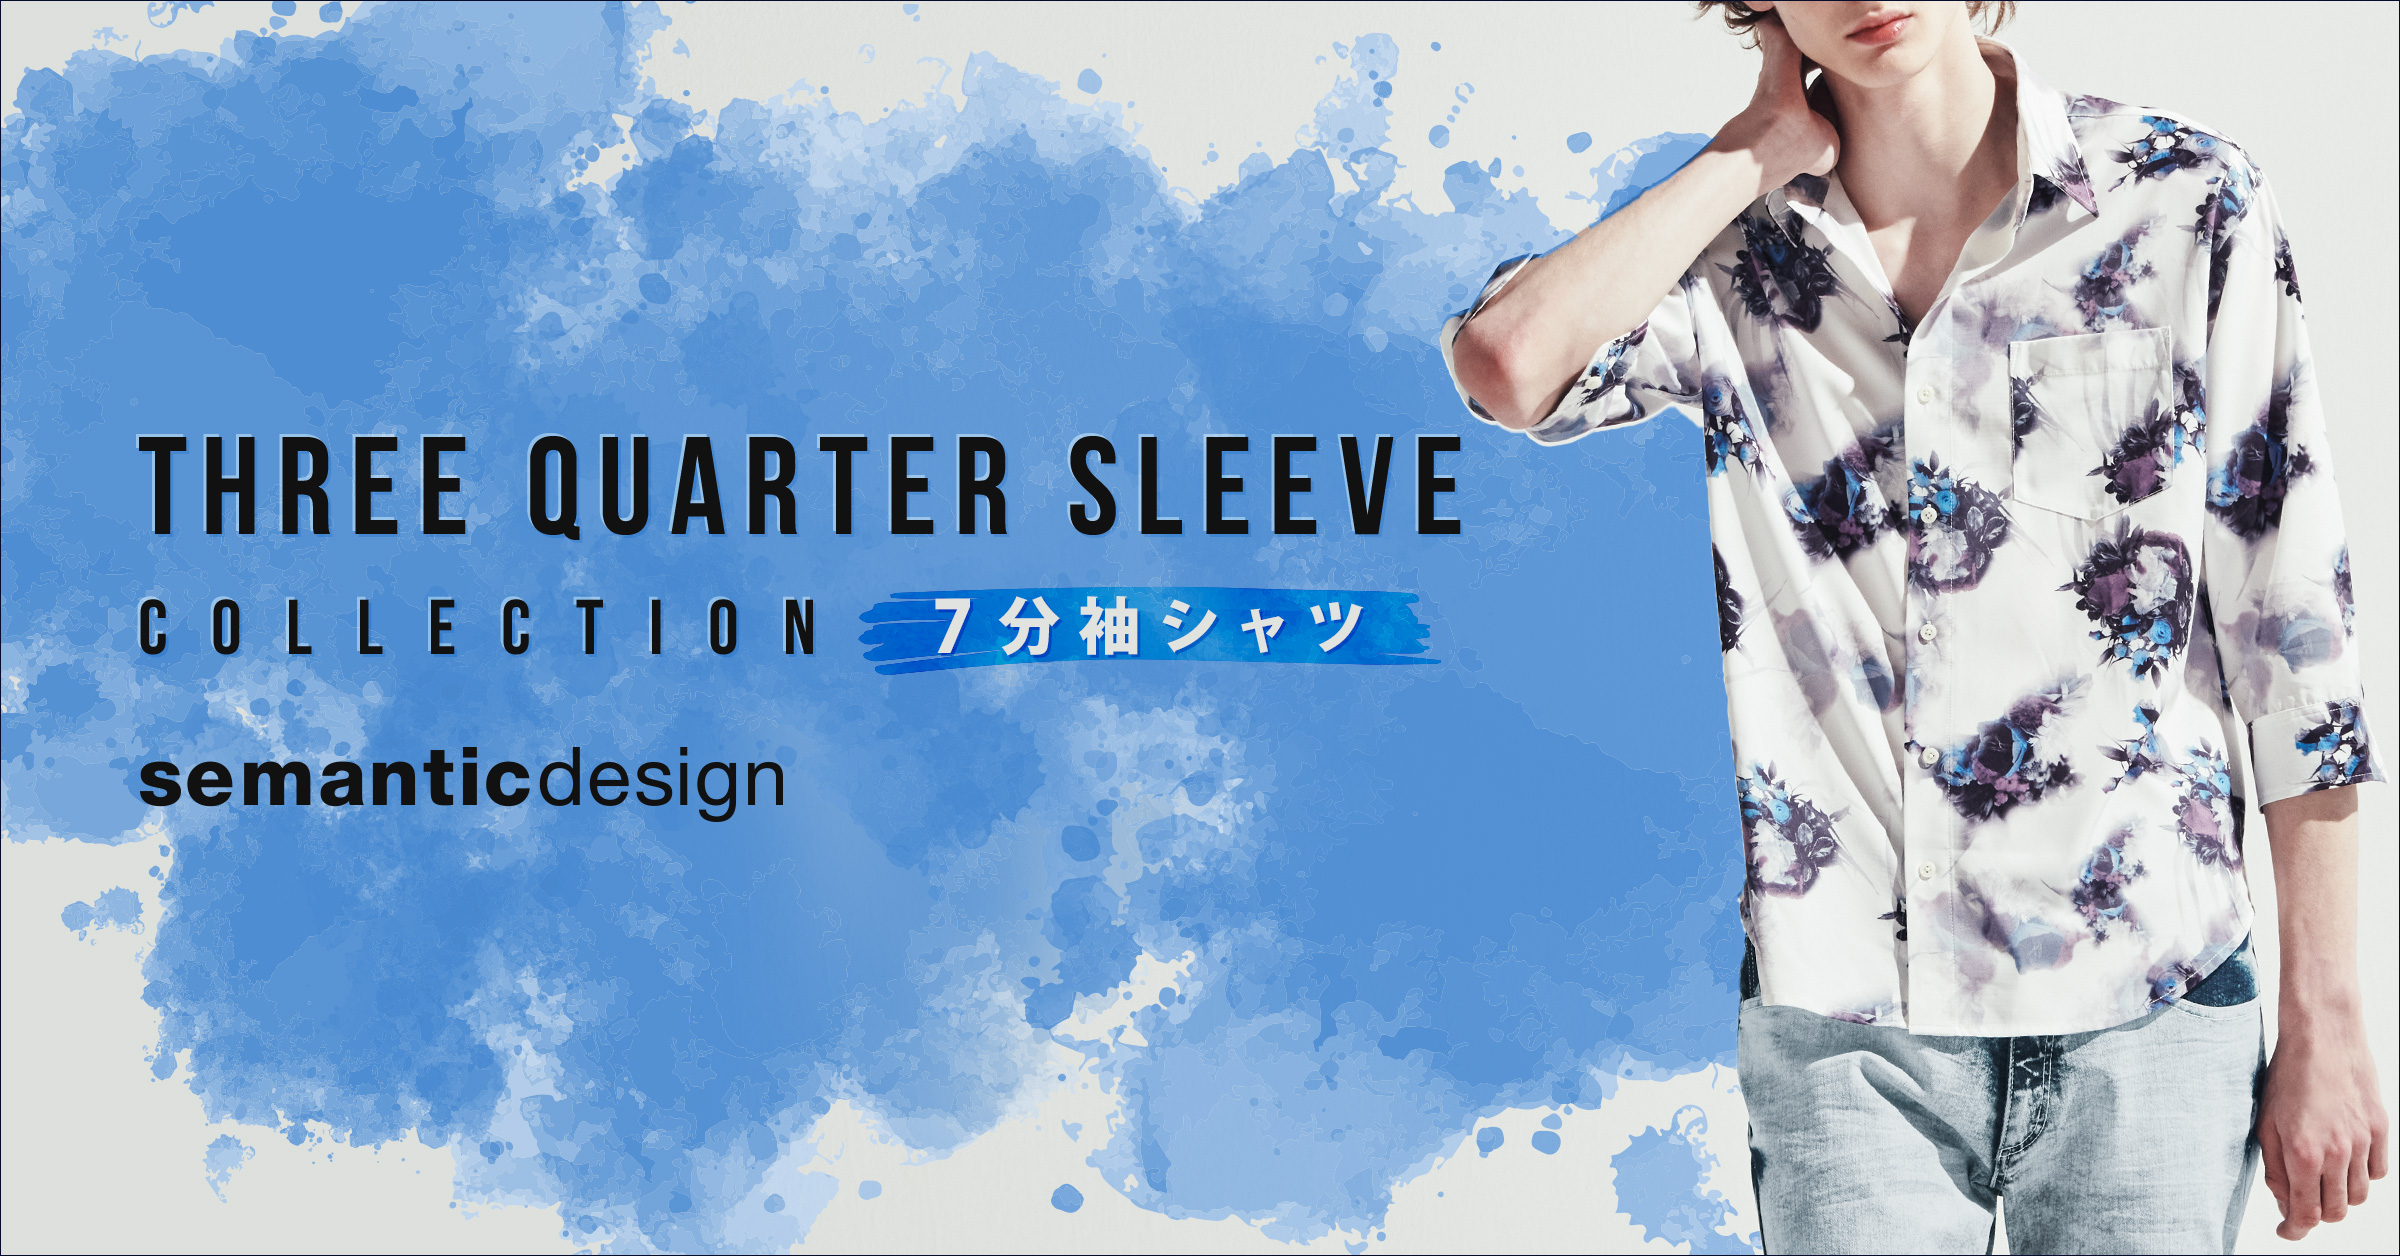 semantic design 7分袖シャツcollection